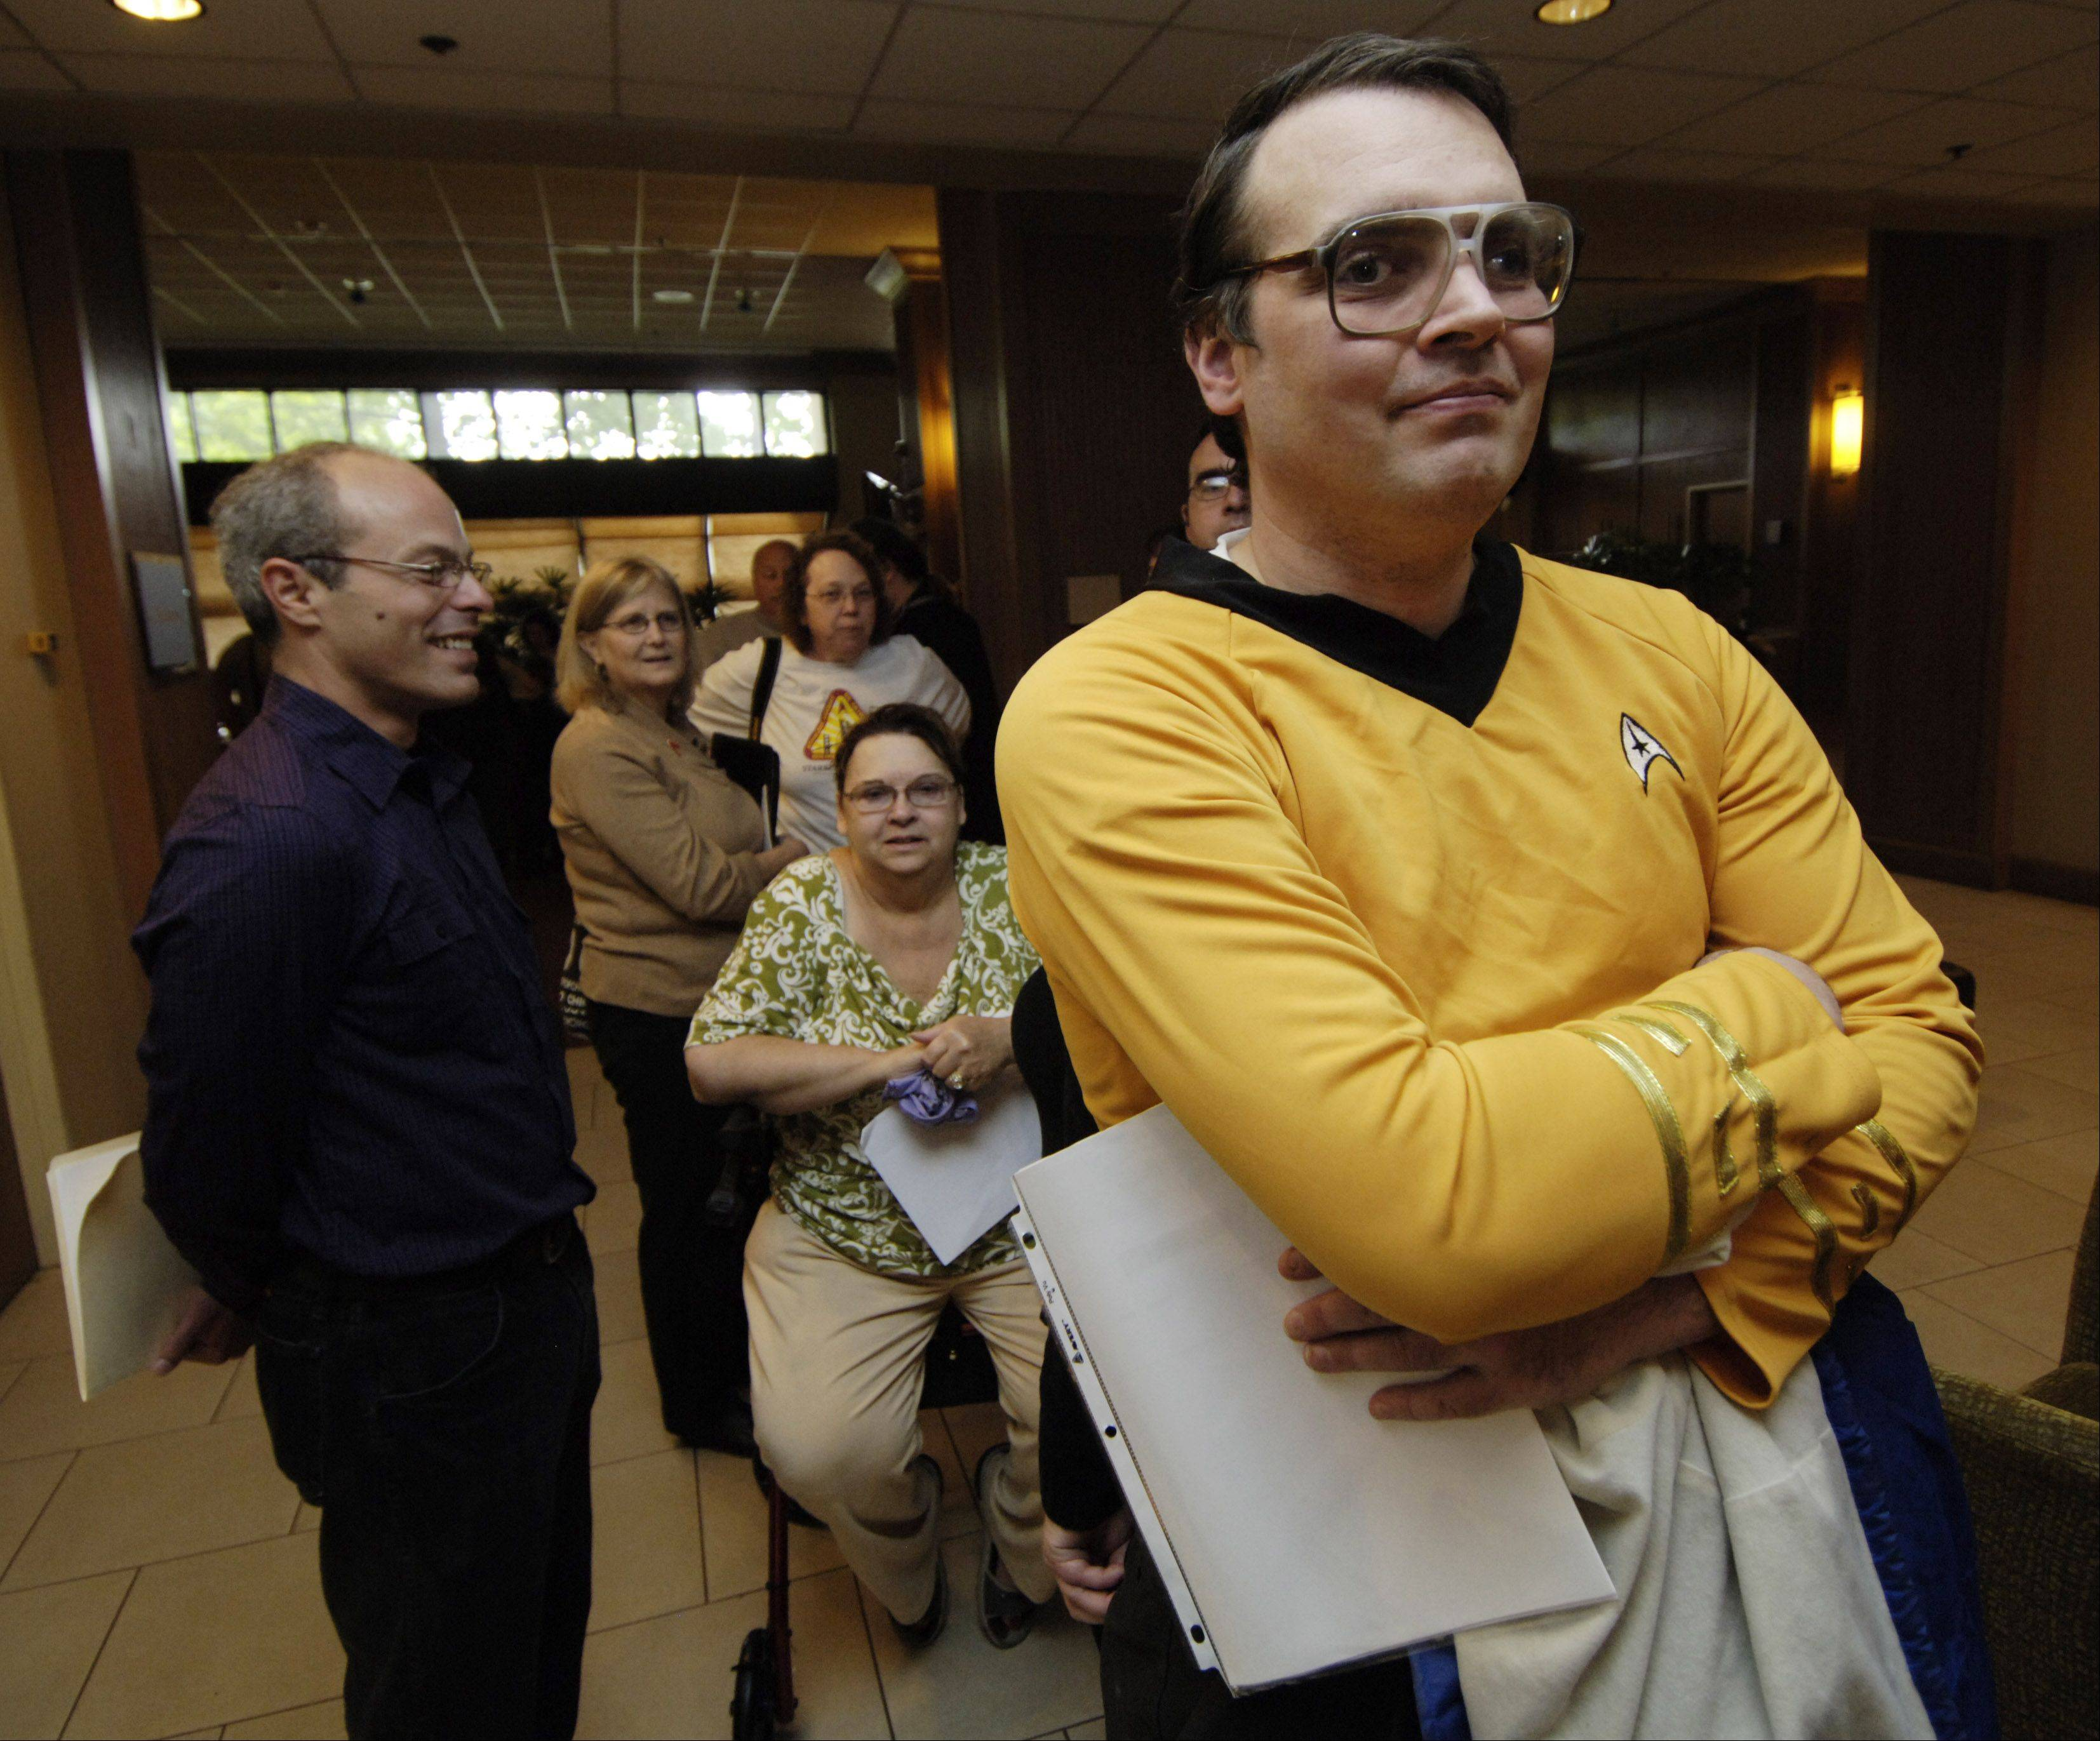 John Lang of McHenry waits to enter the Star Trek convention at the Westin O'Hare in Rosemont Friday. Note the yellow shirt, which designates him as command (Redshirts, meanwhile, almost always die on the alien planet).